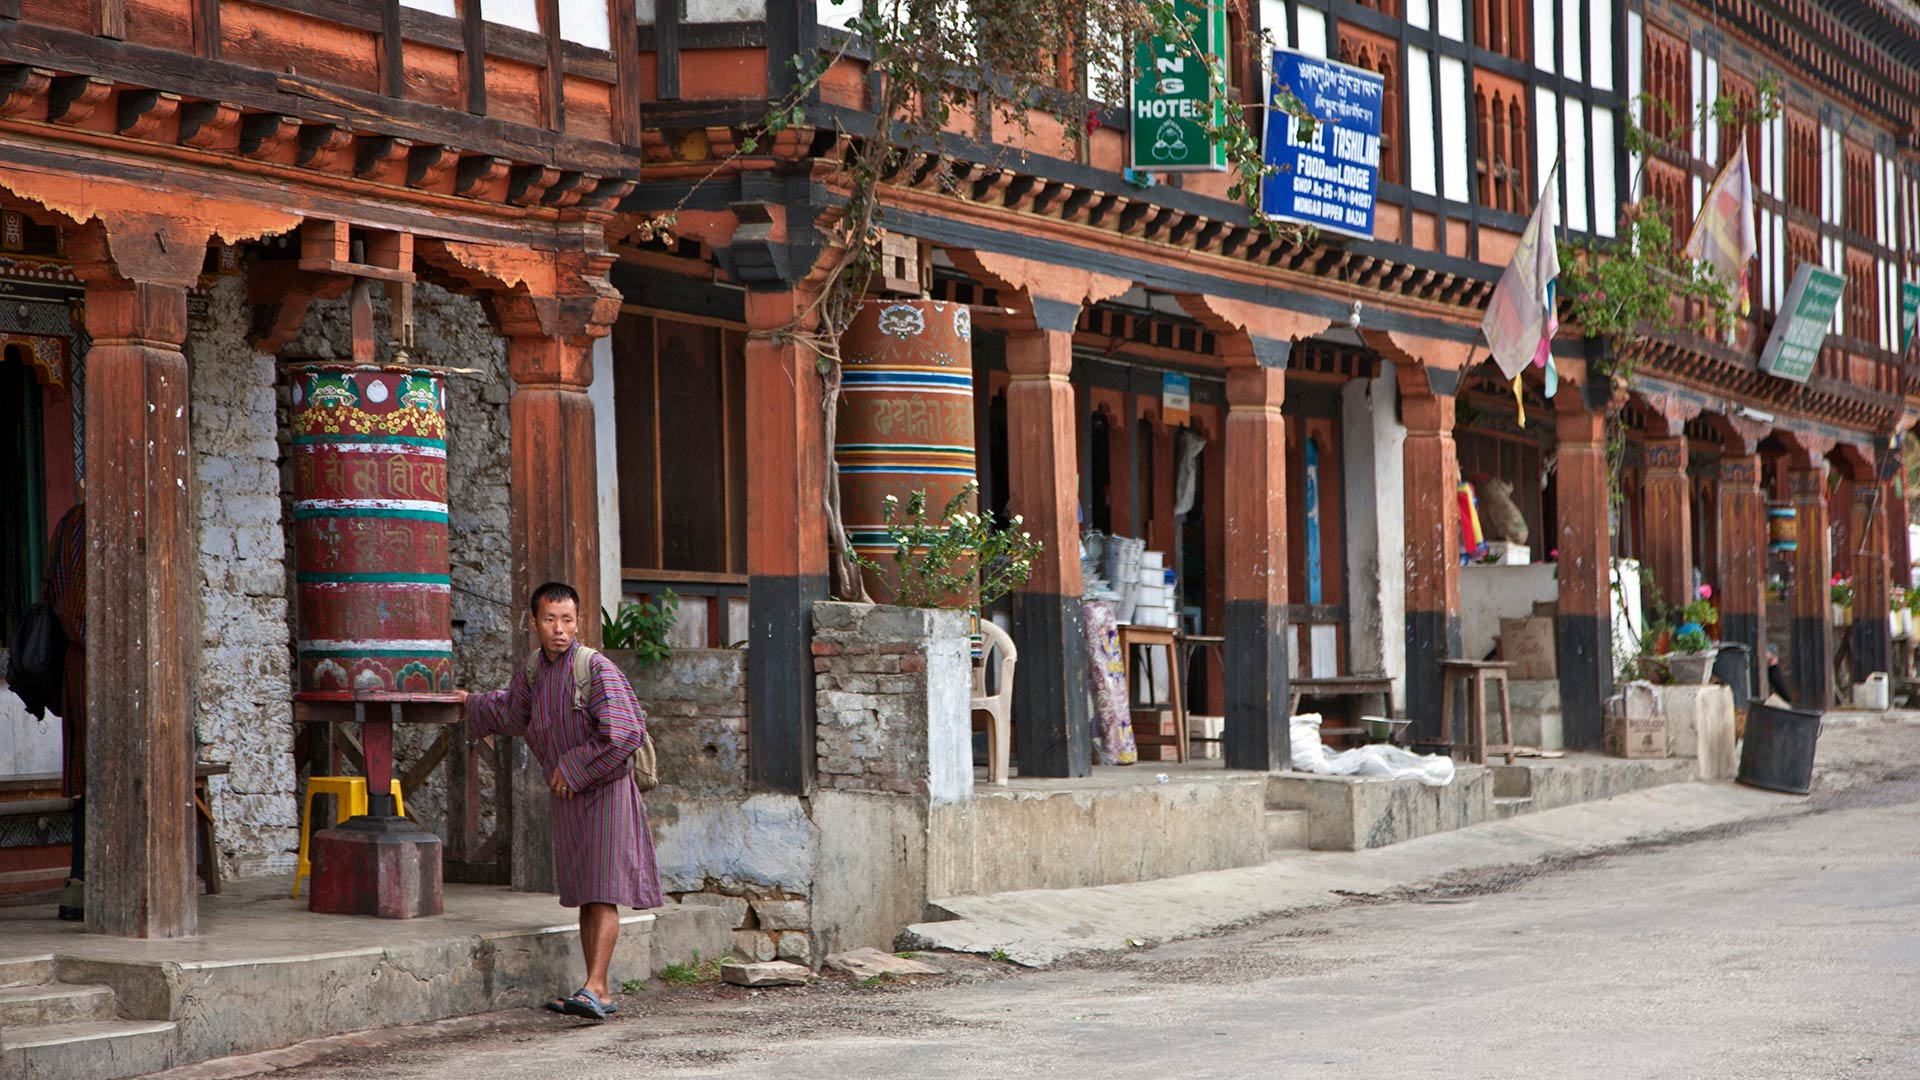 The main street in Mongar with shops and hotels built in the traditional Bhutanese architectural style